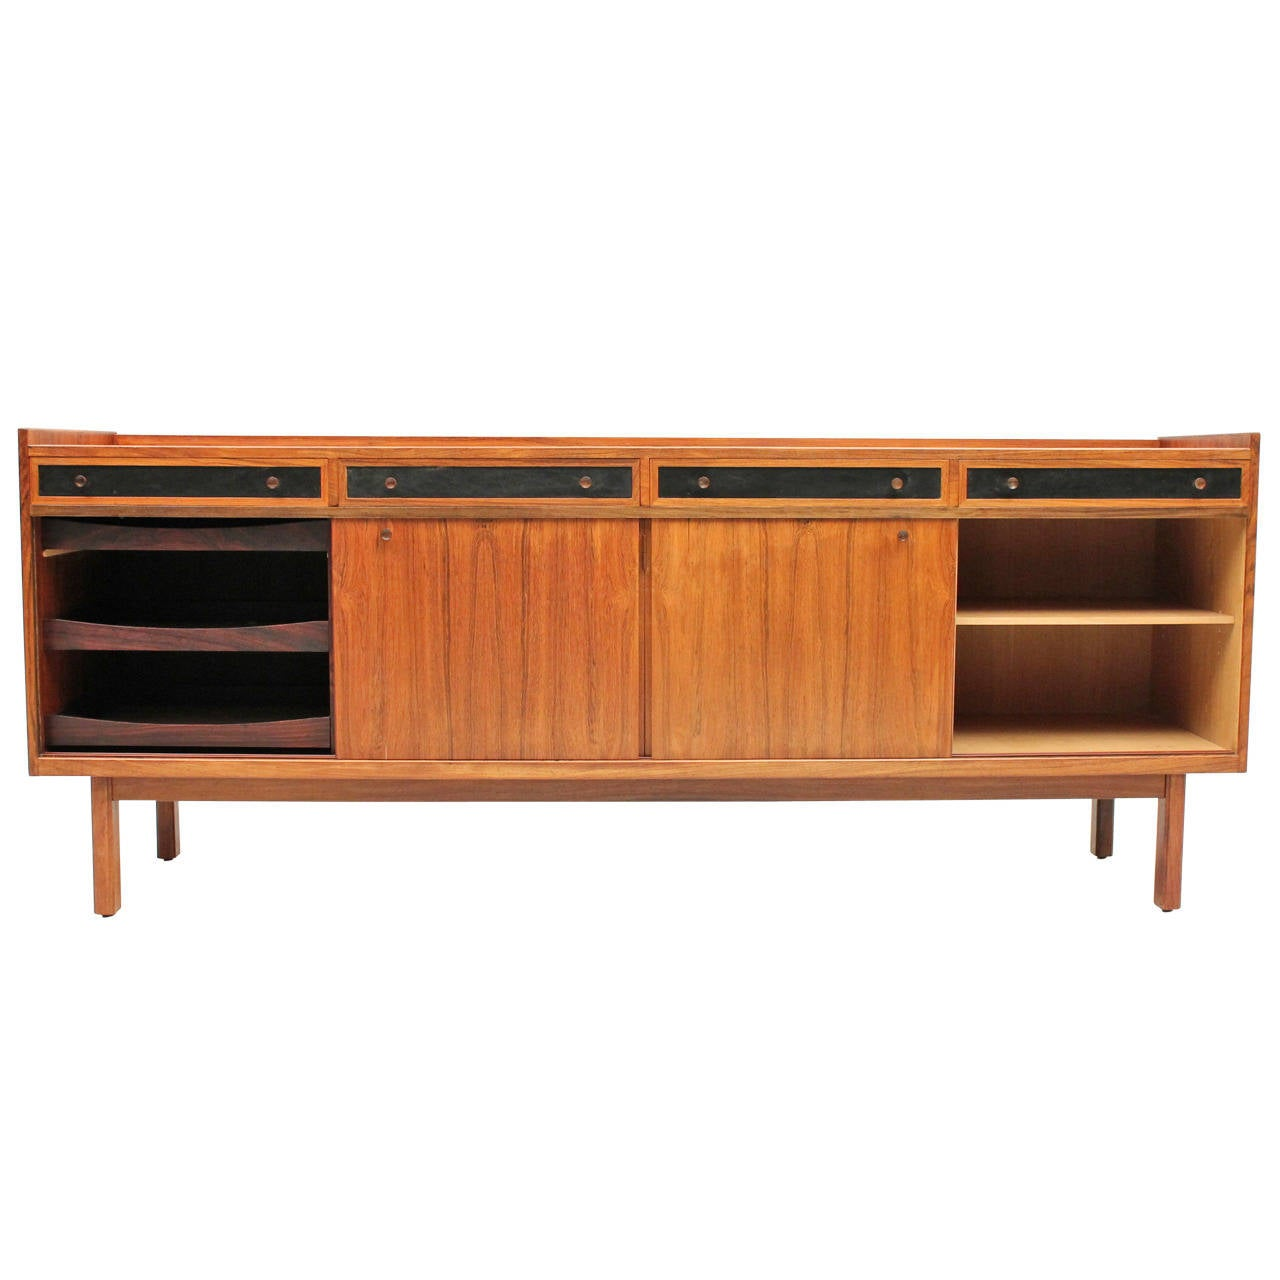 Danish Mid Century Modern Rosewood Credenza With Leather